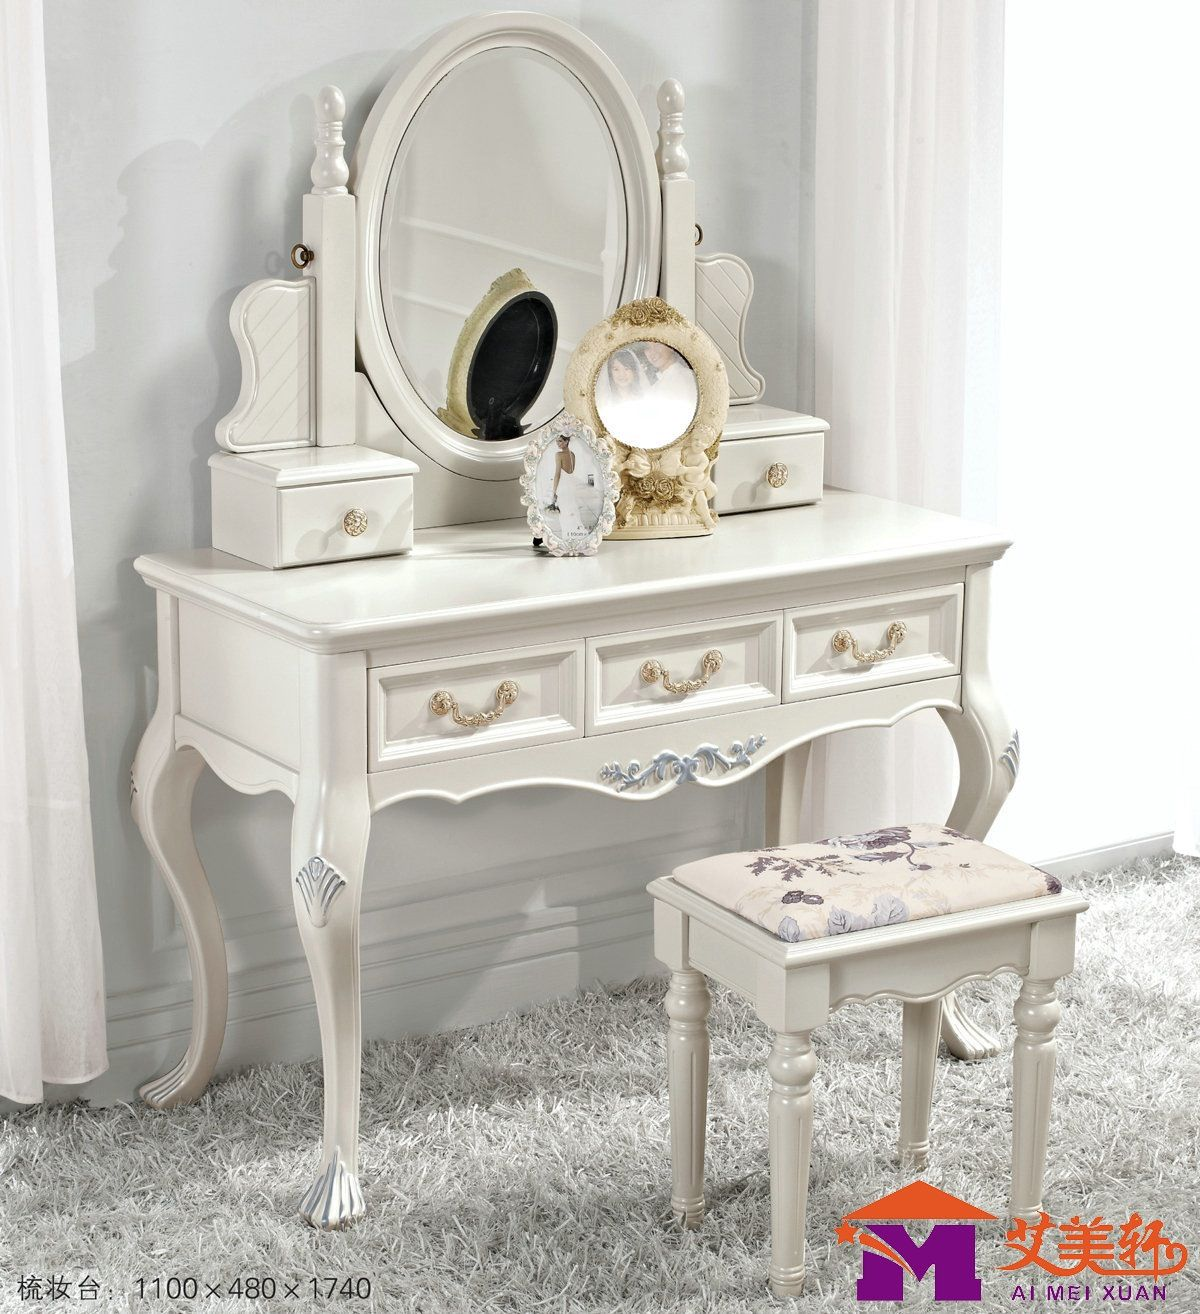 Dressing table classical in white with laurel and shell motifs